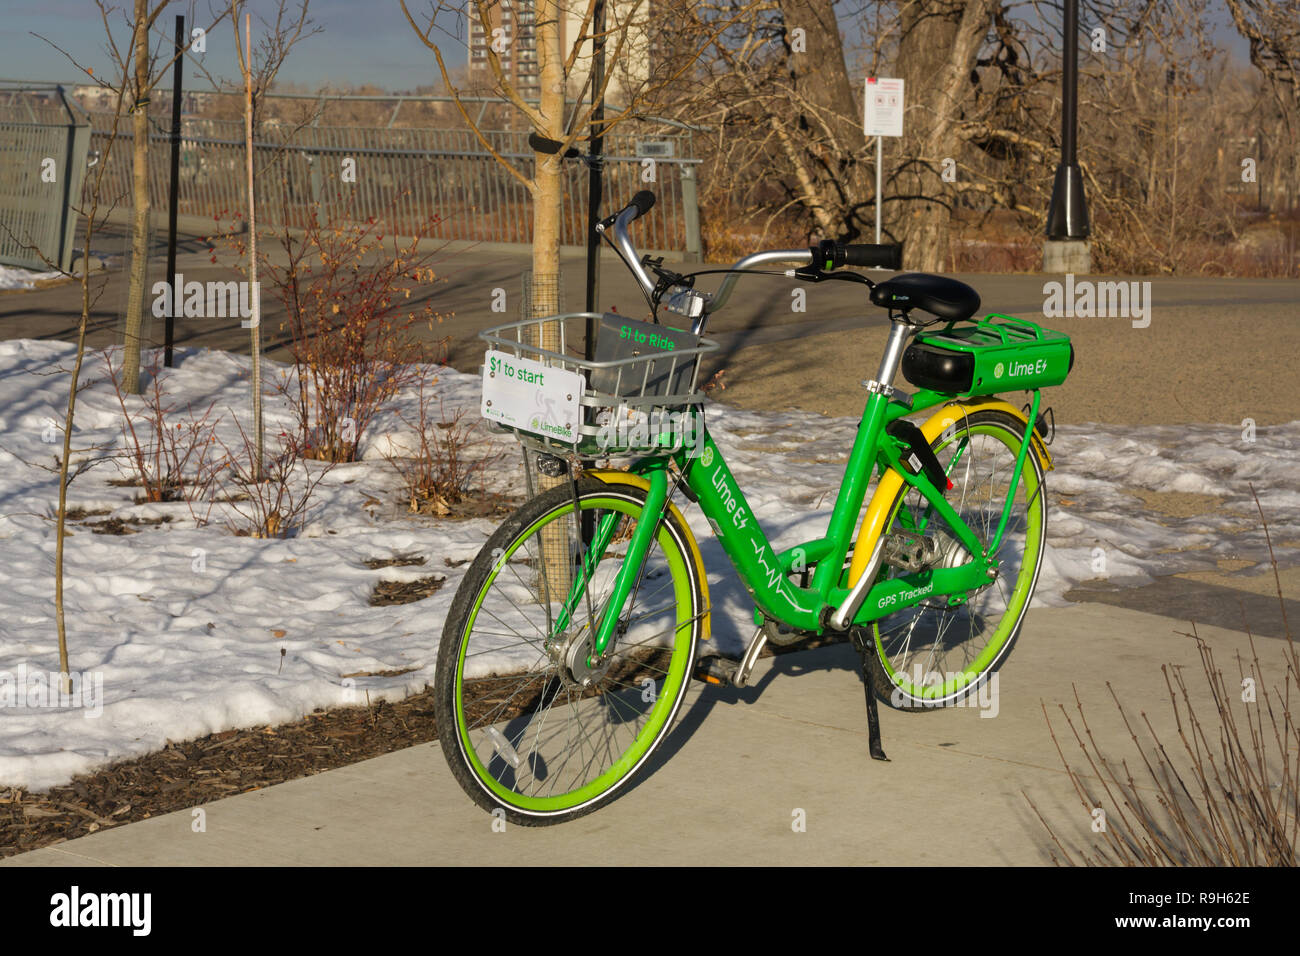 Green bike sharing service launched as part of a pilot project in Calgary, Alberta, Canada - Stock Image